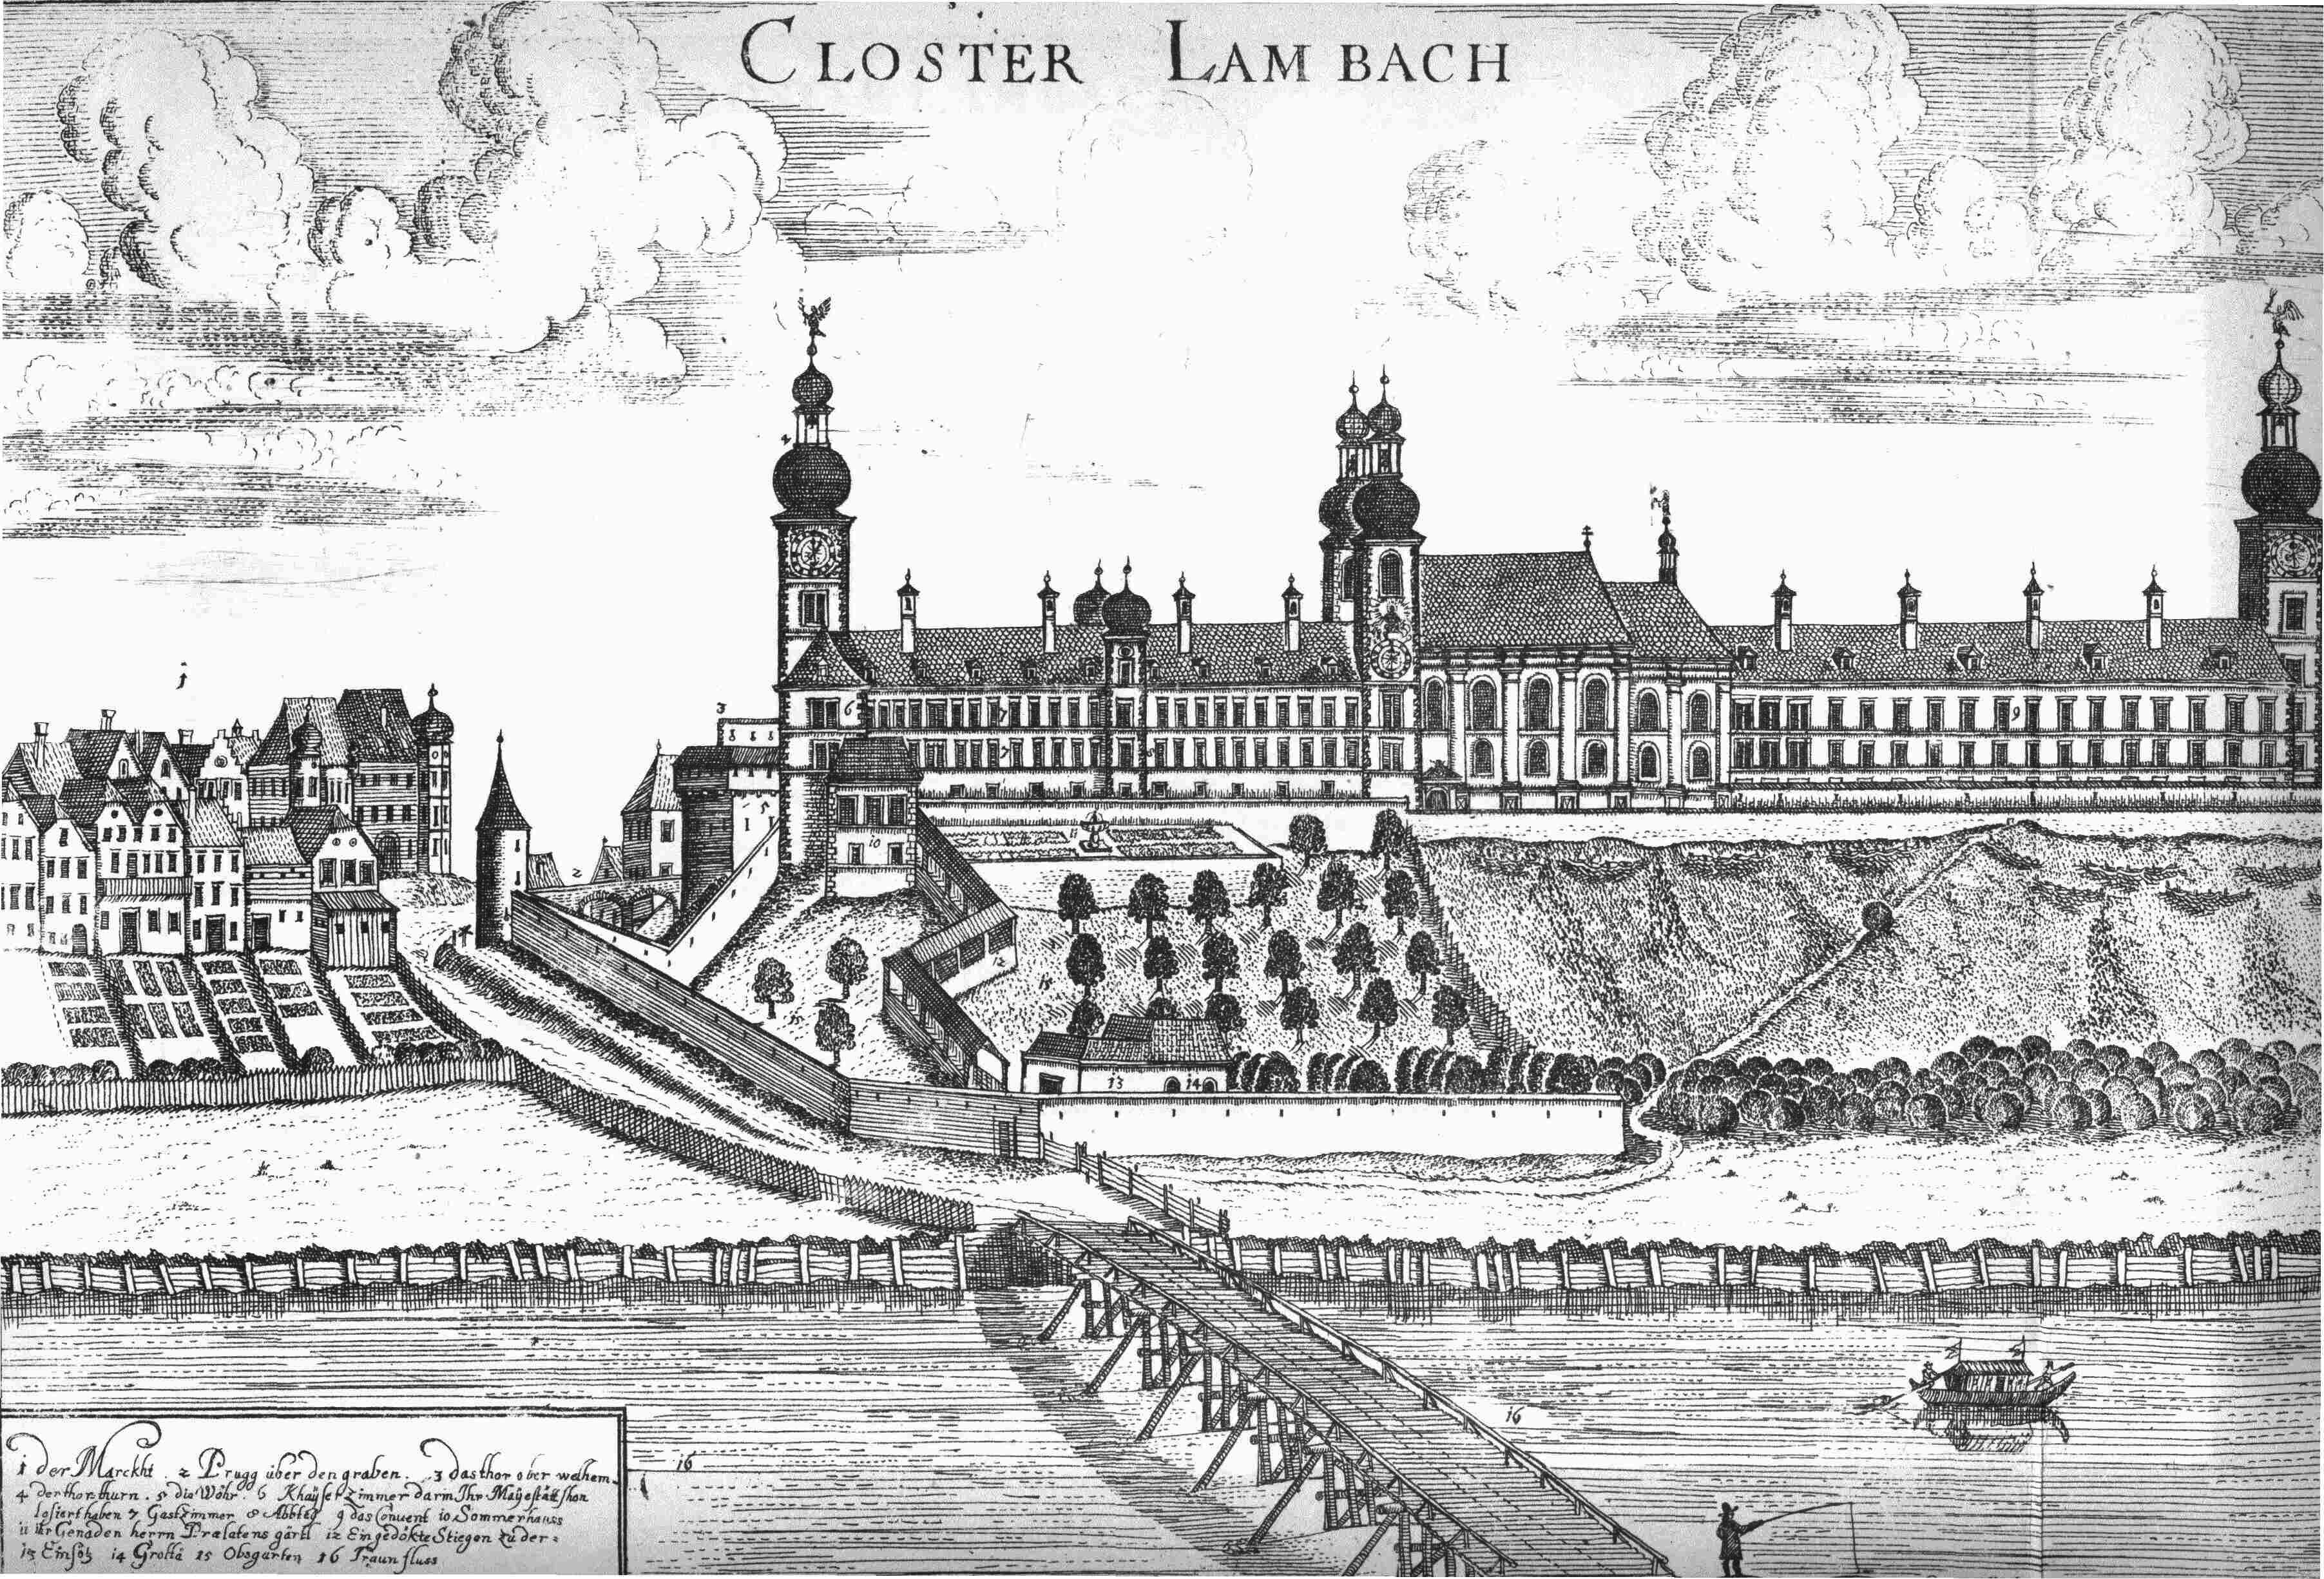 Kloster Lambach